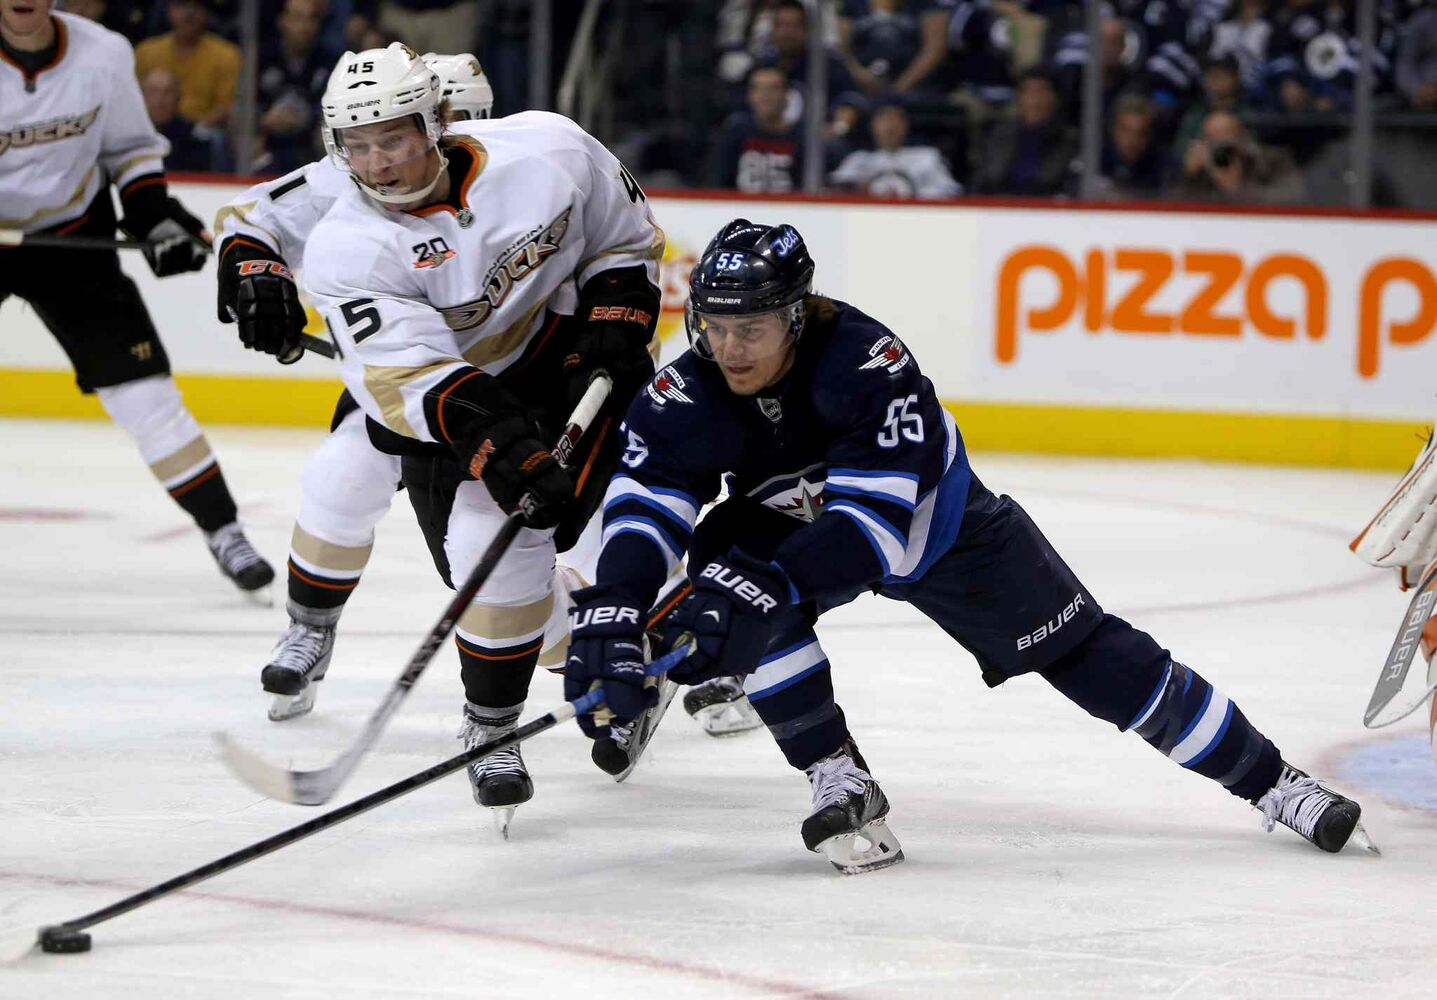 Anaheim Ducks' Sami Vatanen battles with Winnipeg Jets' Mark Scheifele in the second period. (TREVOR HAGAN / THE CANADIAN PRESS)